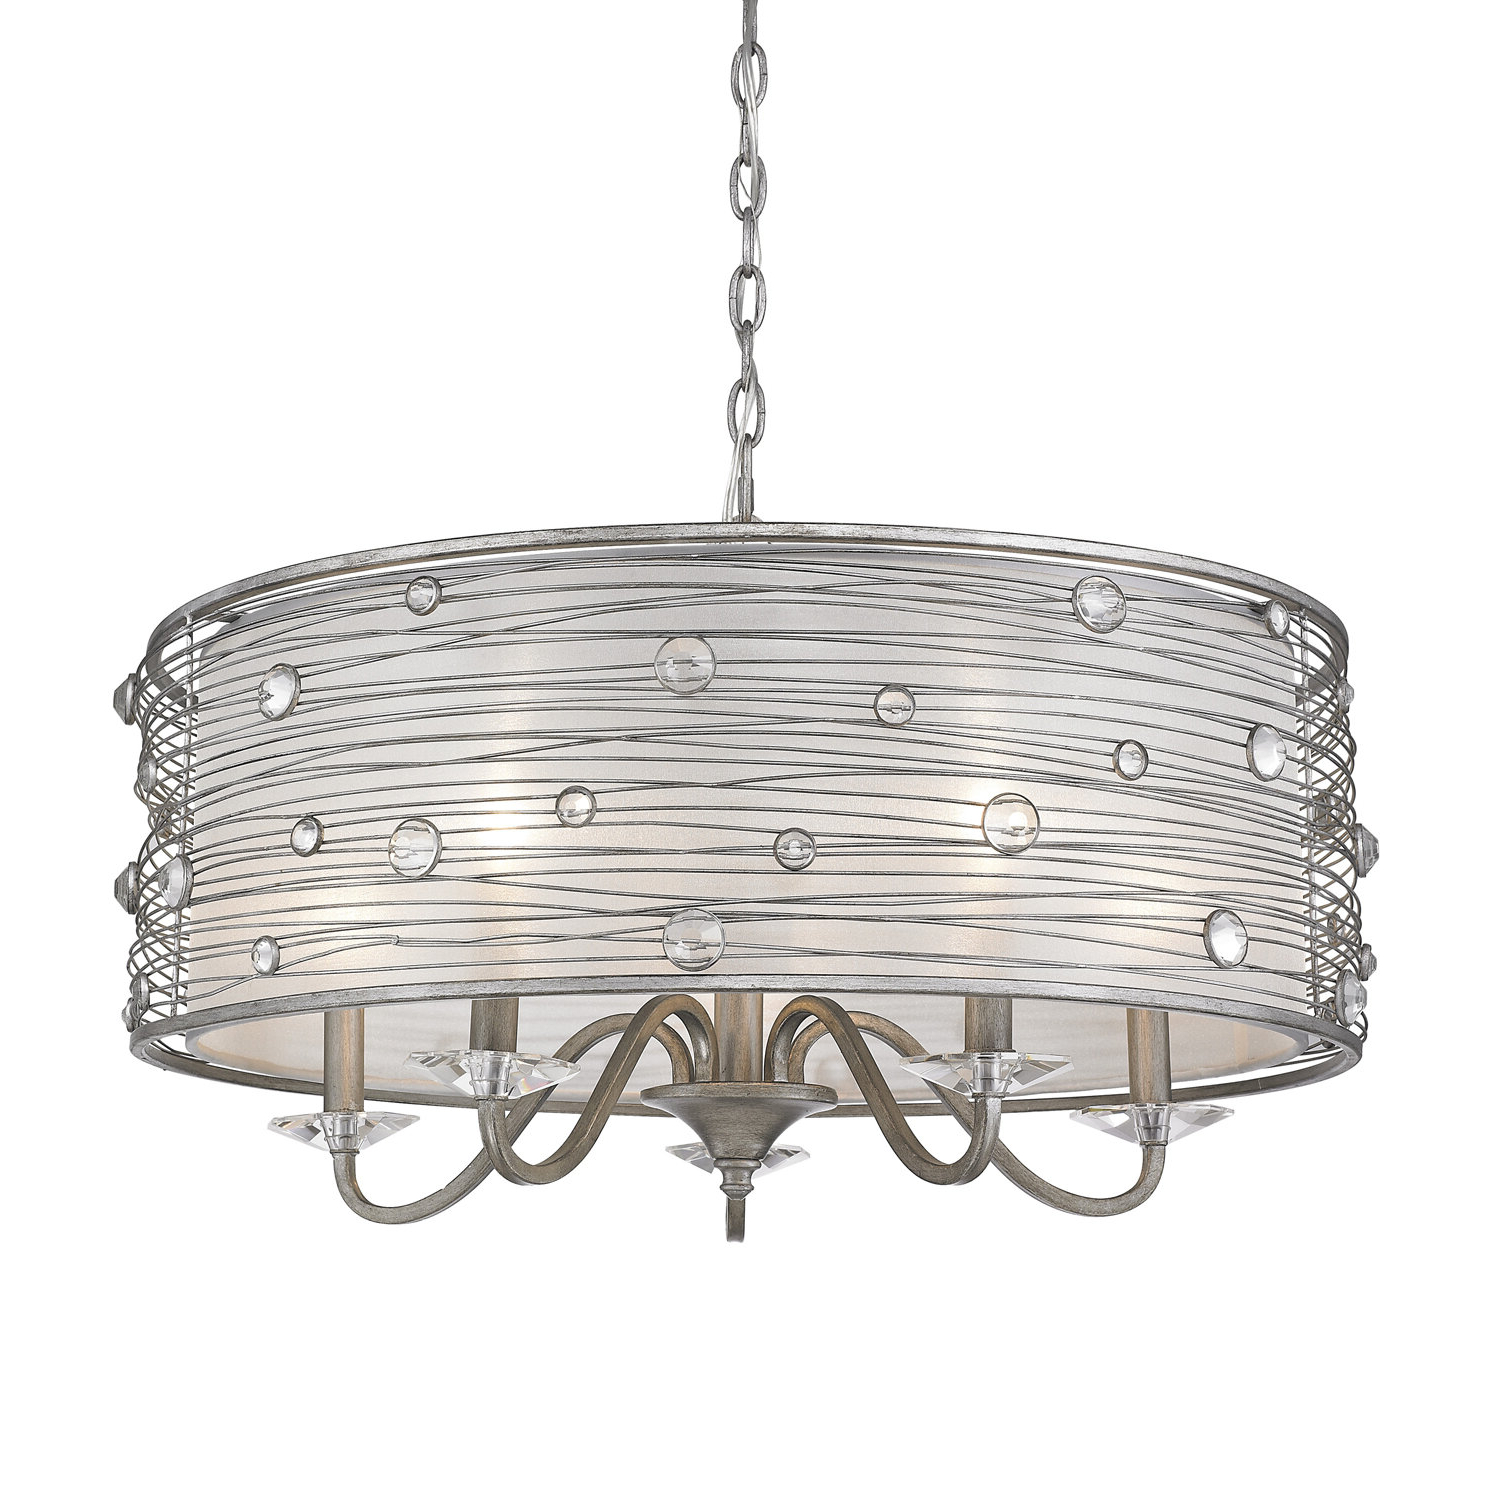 Newest Hermione 5 Light Drum Chandelier Pertaining To Hermione 1 Light Single Drum Pendants (Gallery 10 of 20)